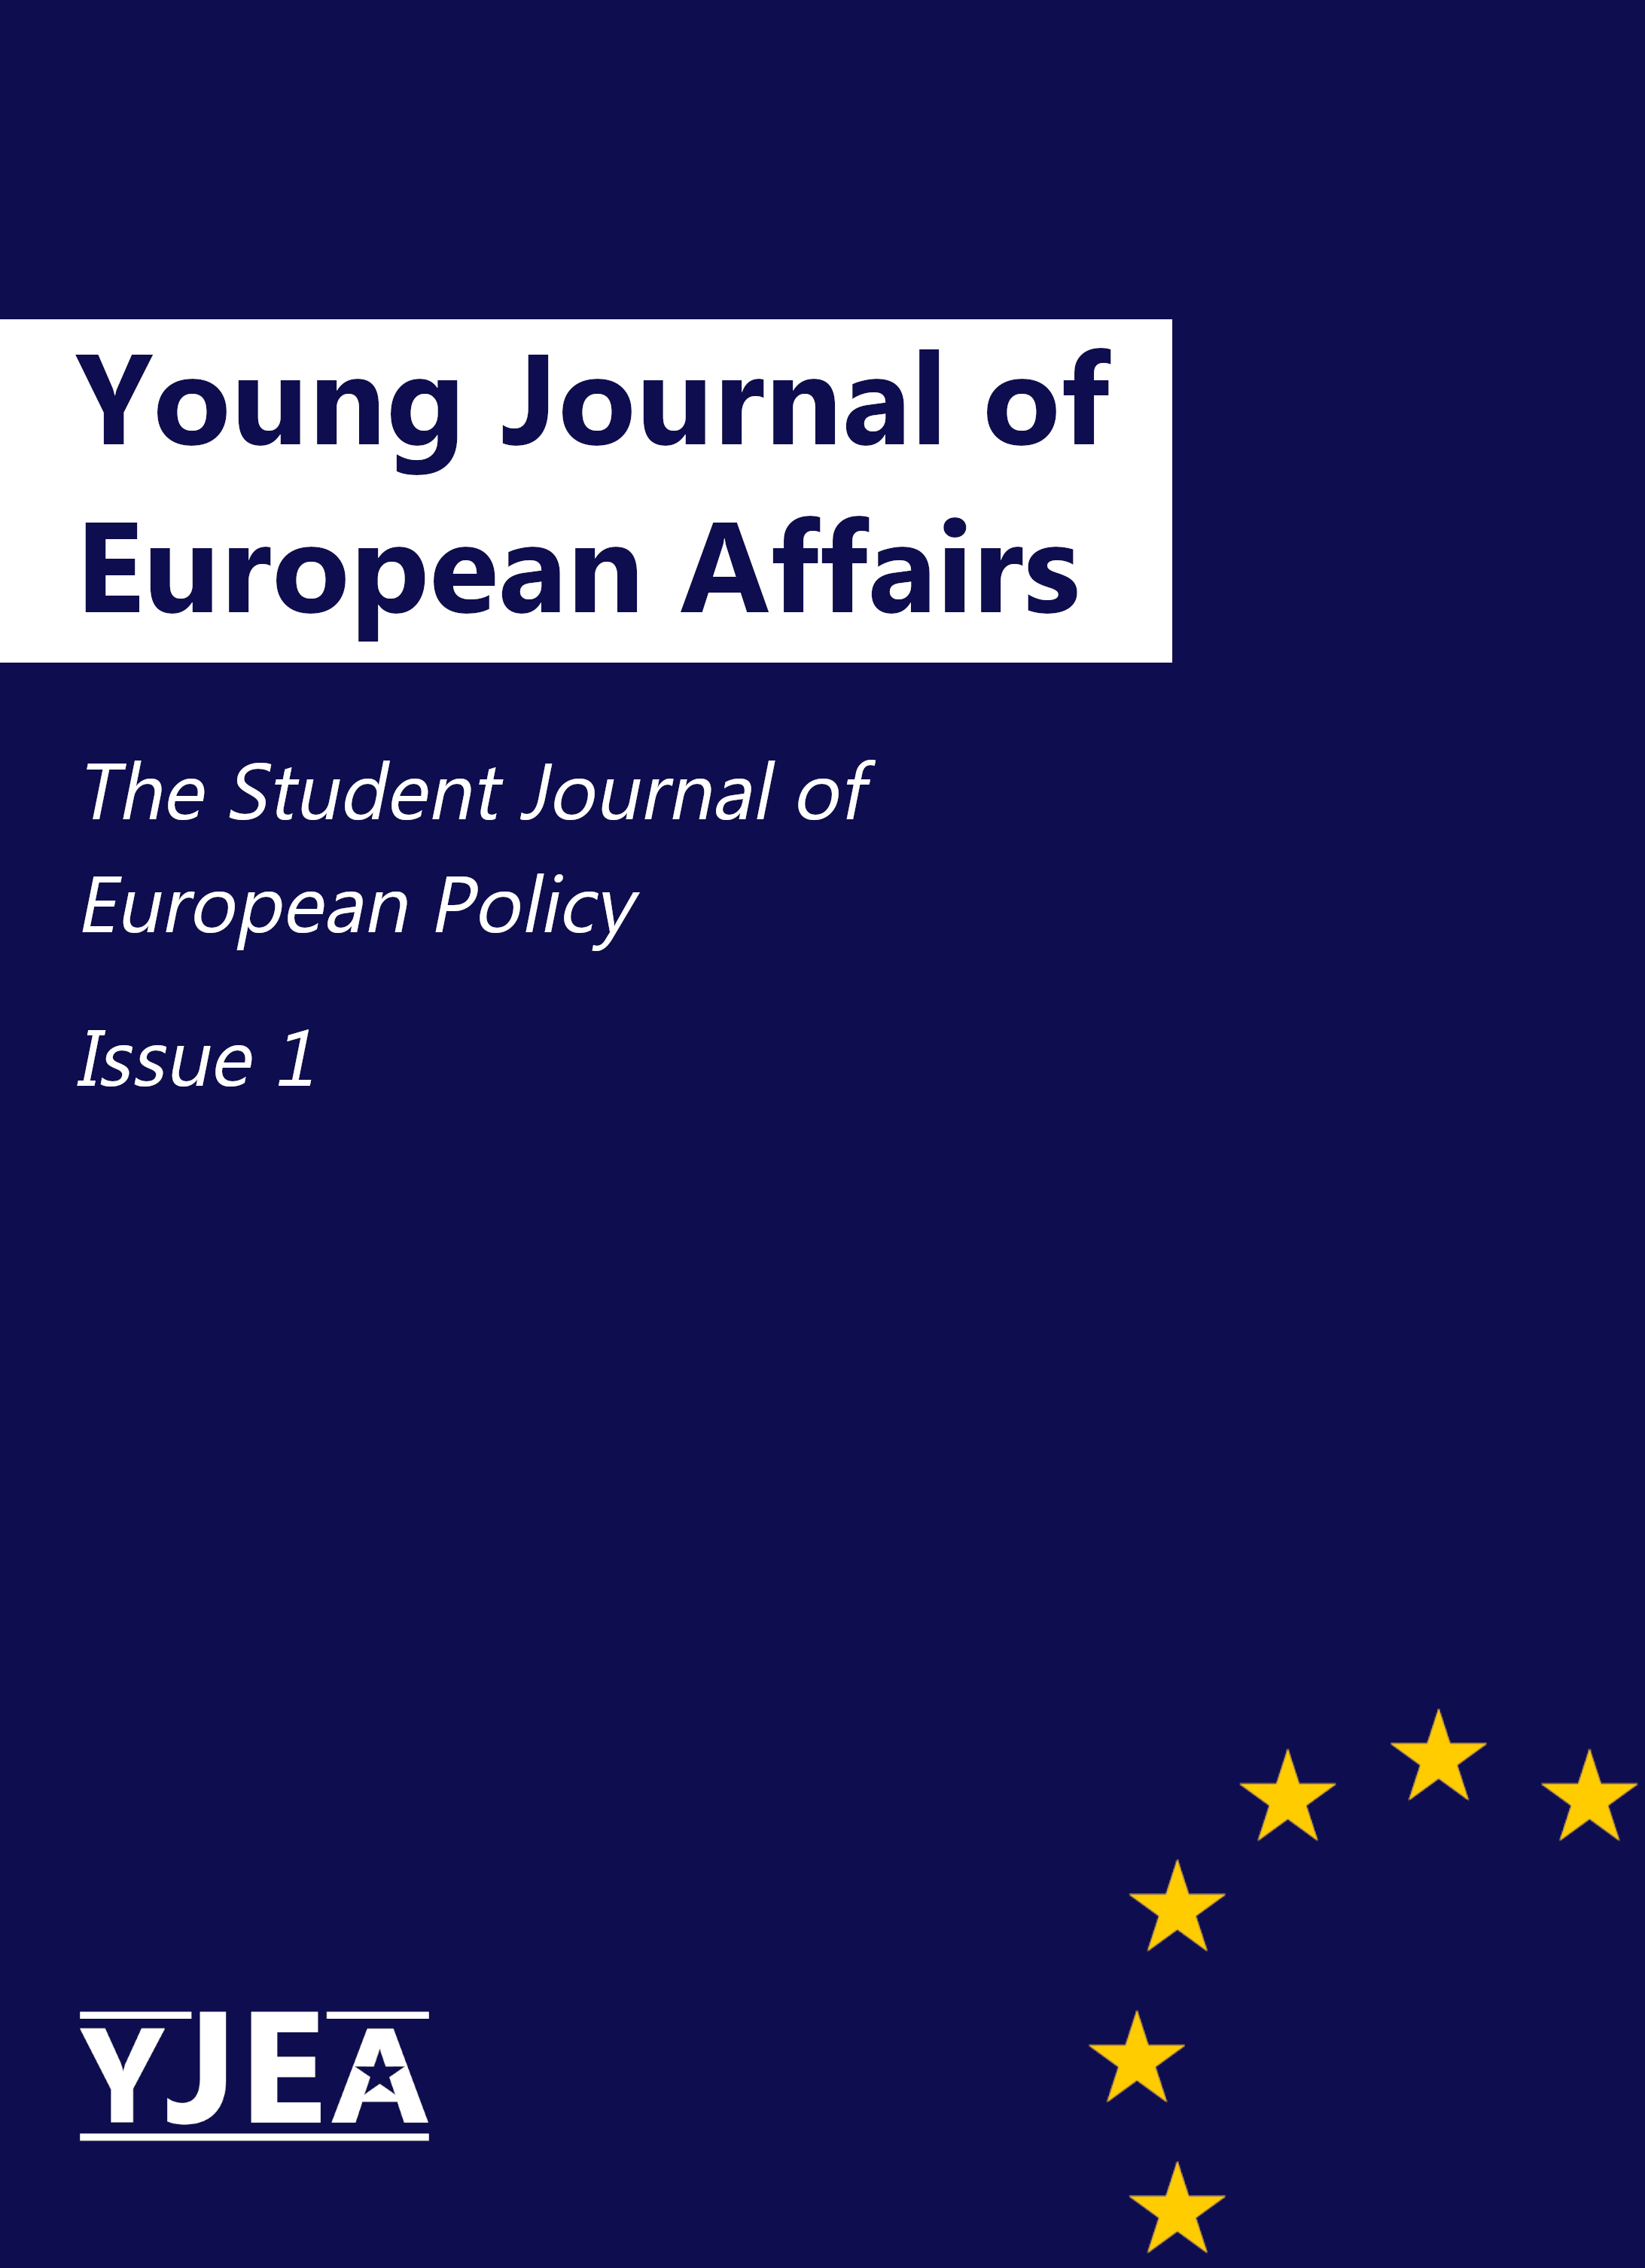 Ansehen Bd. 1 (2021): Young Journal of European Affairs (YJEA) - Issue 1